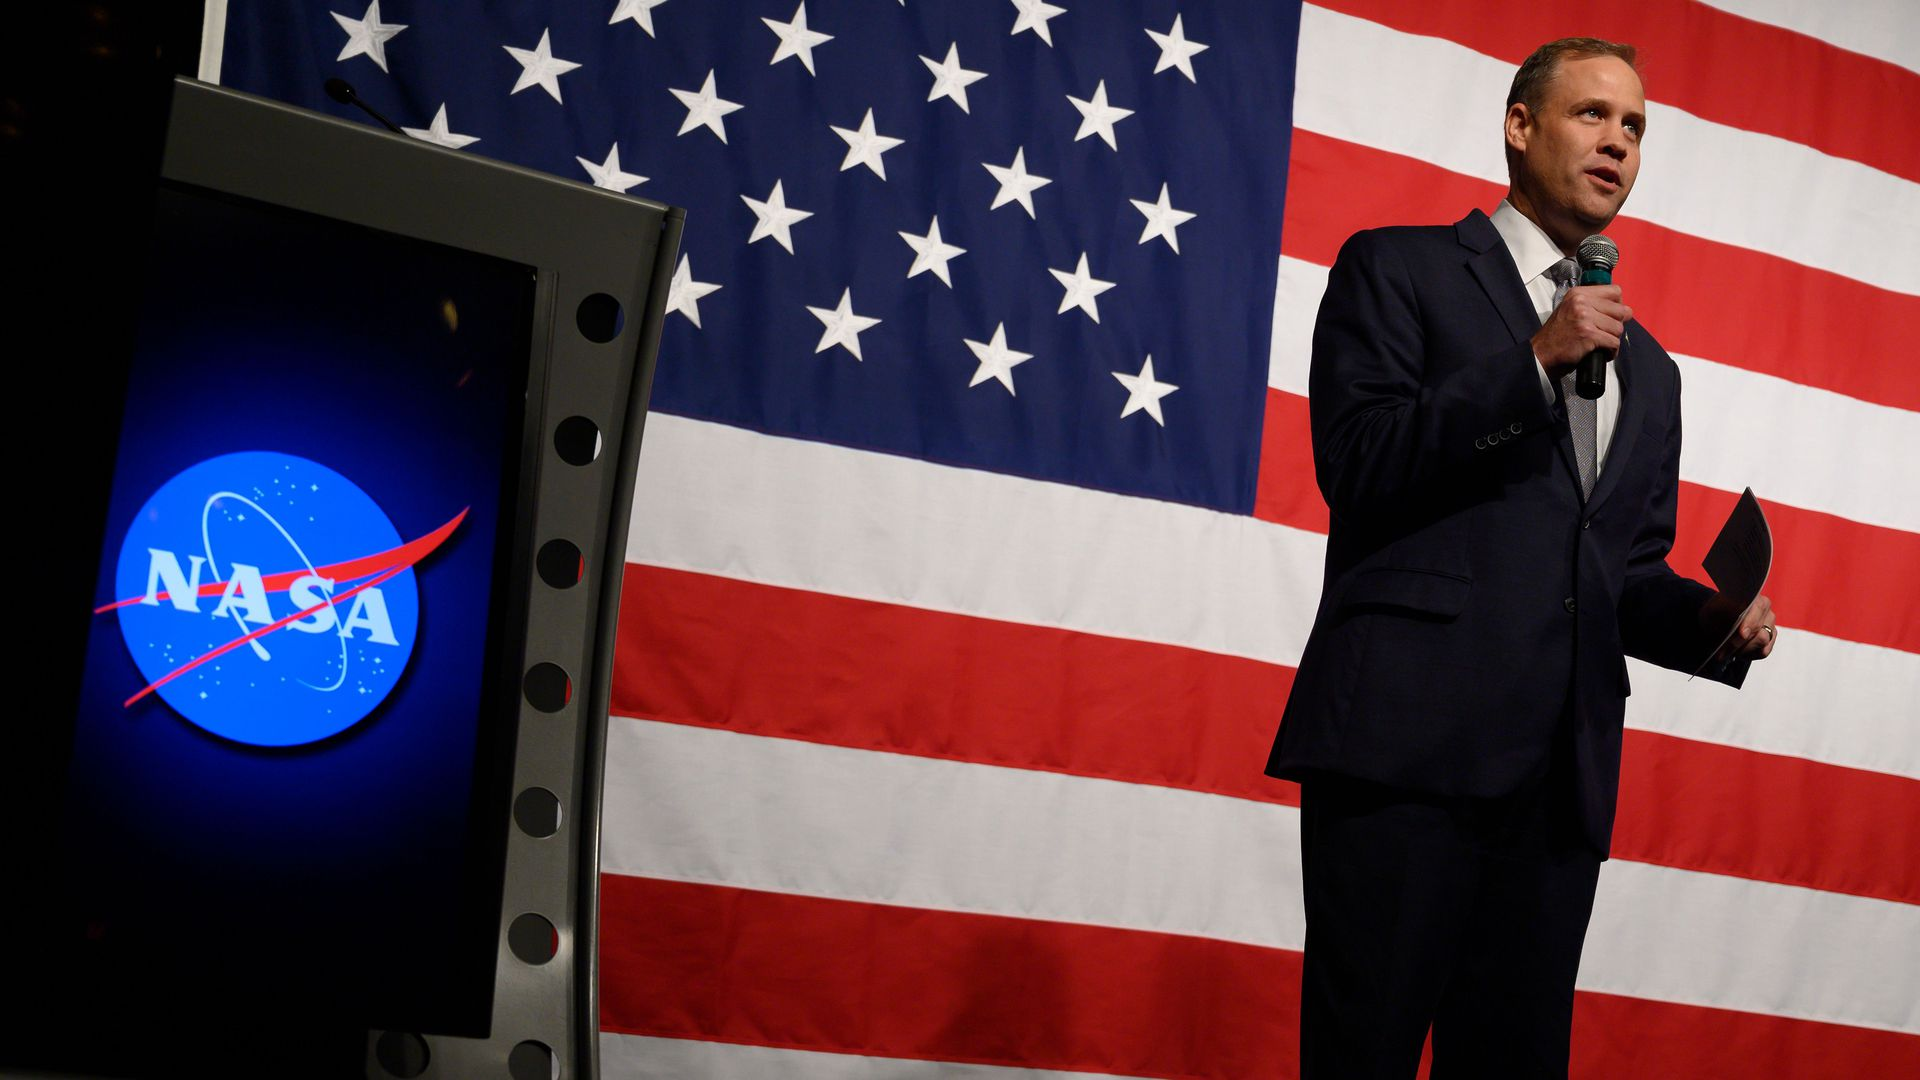 In this image, a man in a suit holds and speaks into a microphone with the American flag behind him.